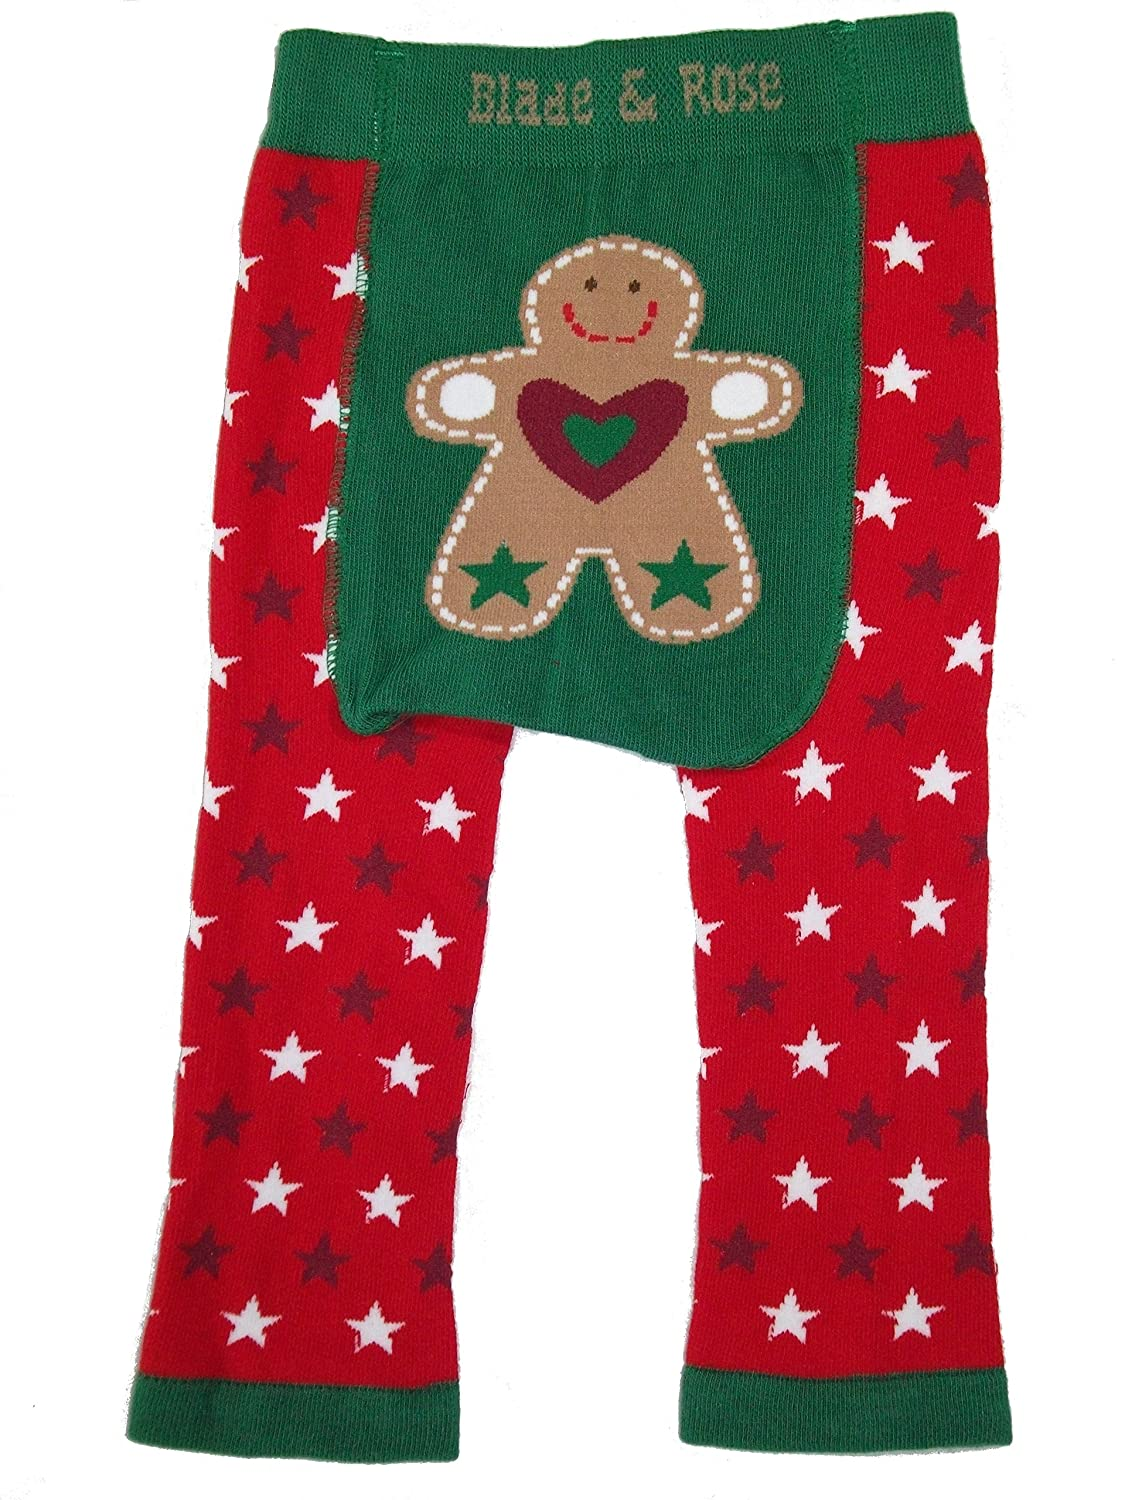 Blade & Rose Gingerbread Man Leggings